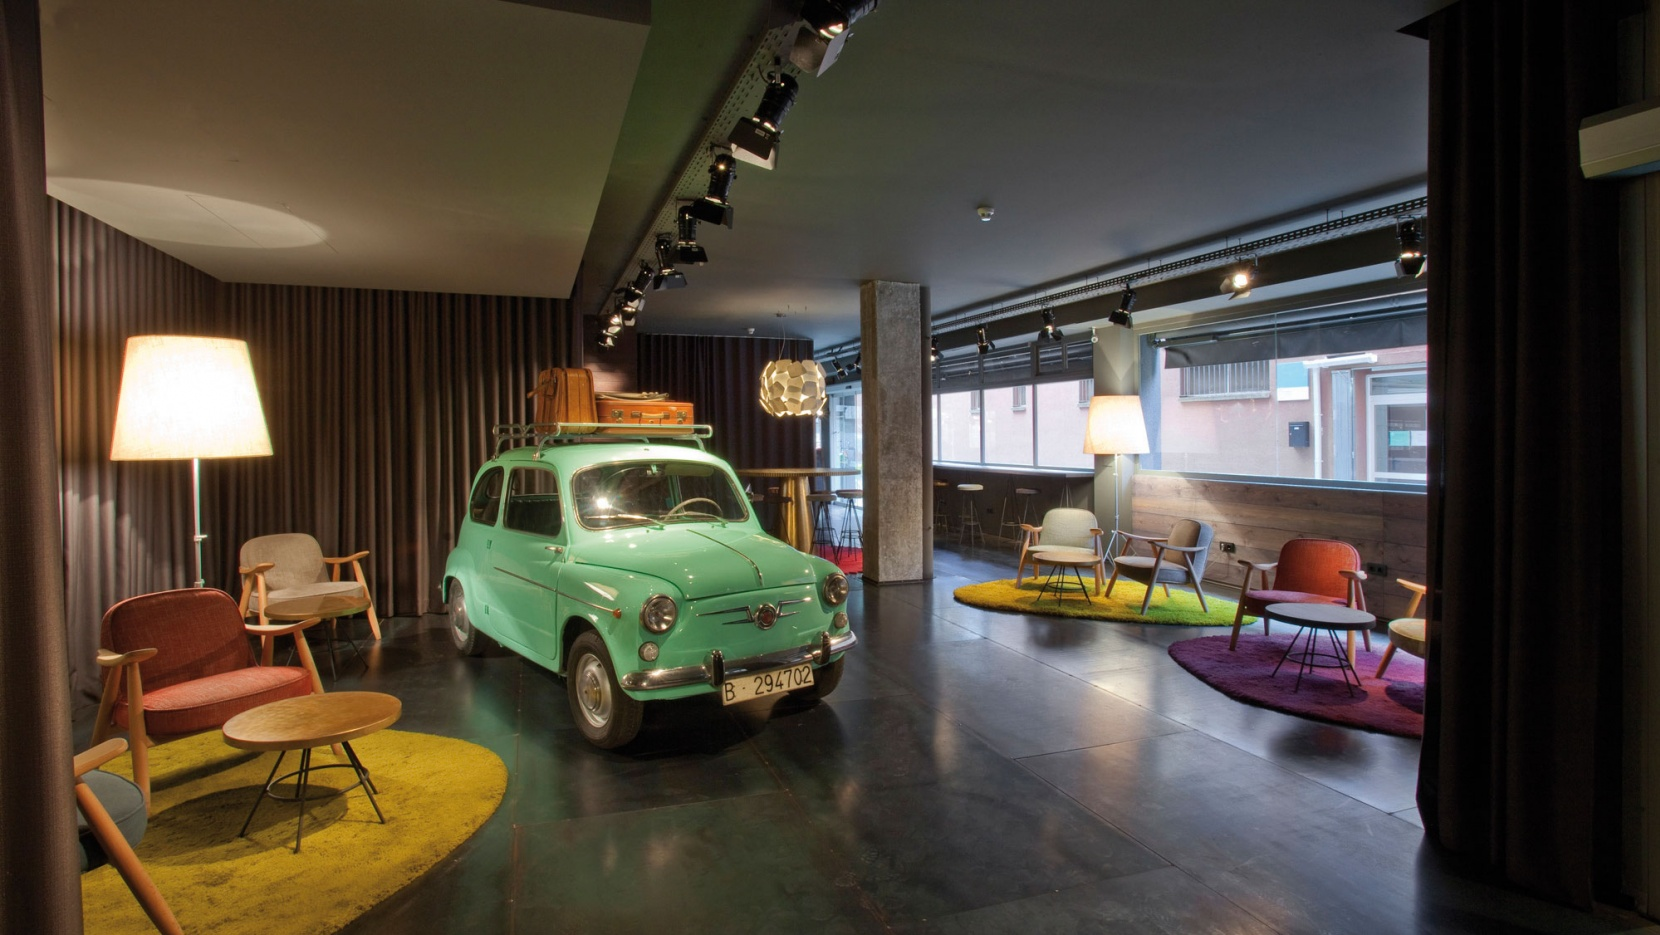 Chic basic ramblas hotel by lagranja design in barcelona for Design hotel barcelona